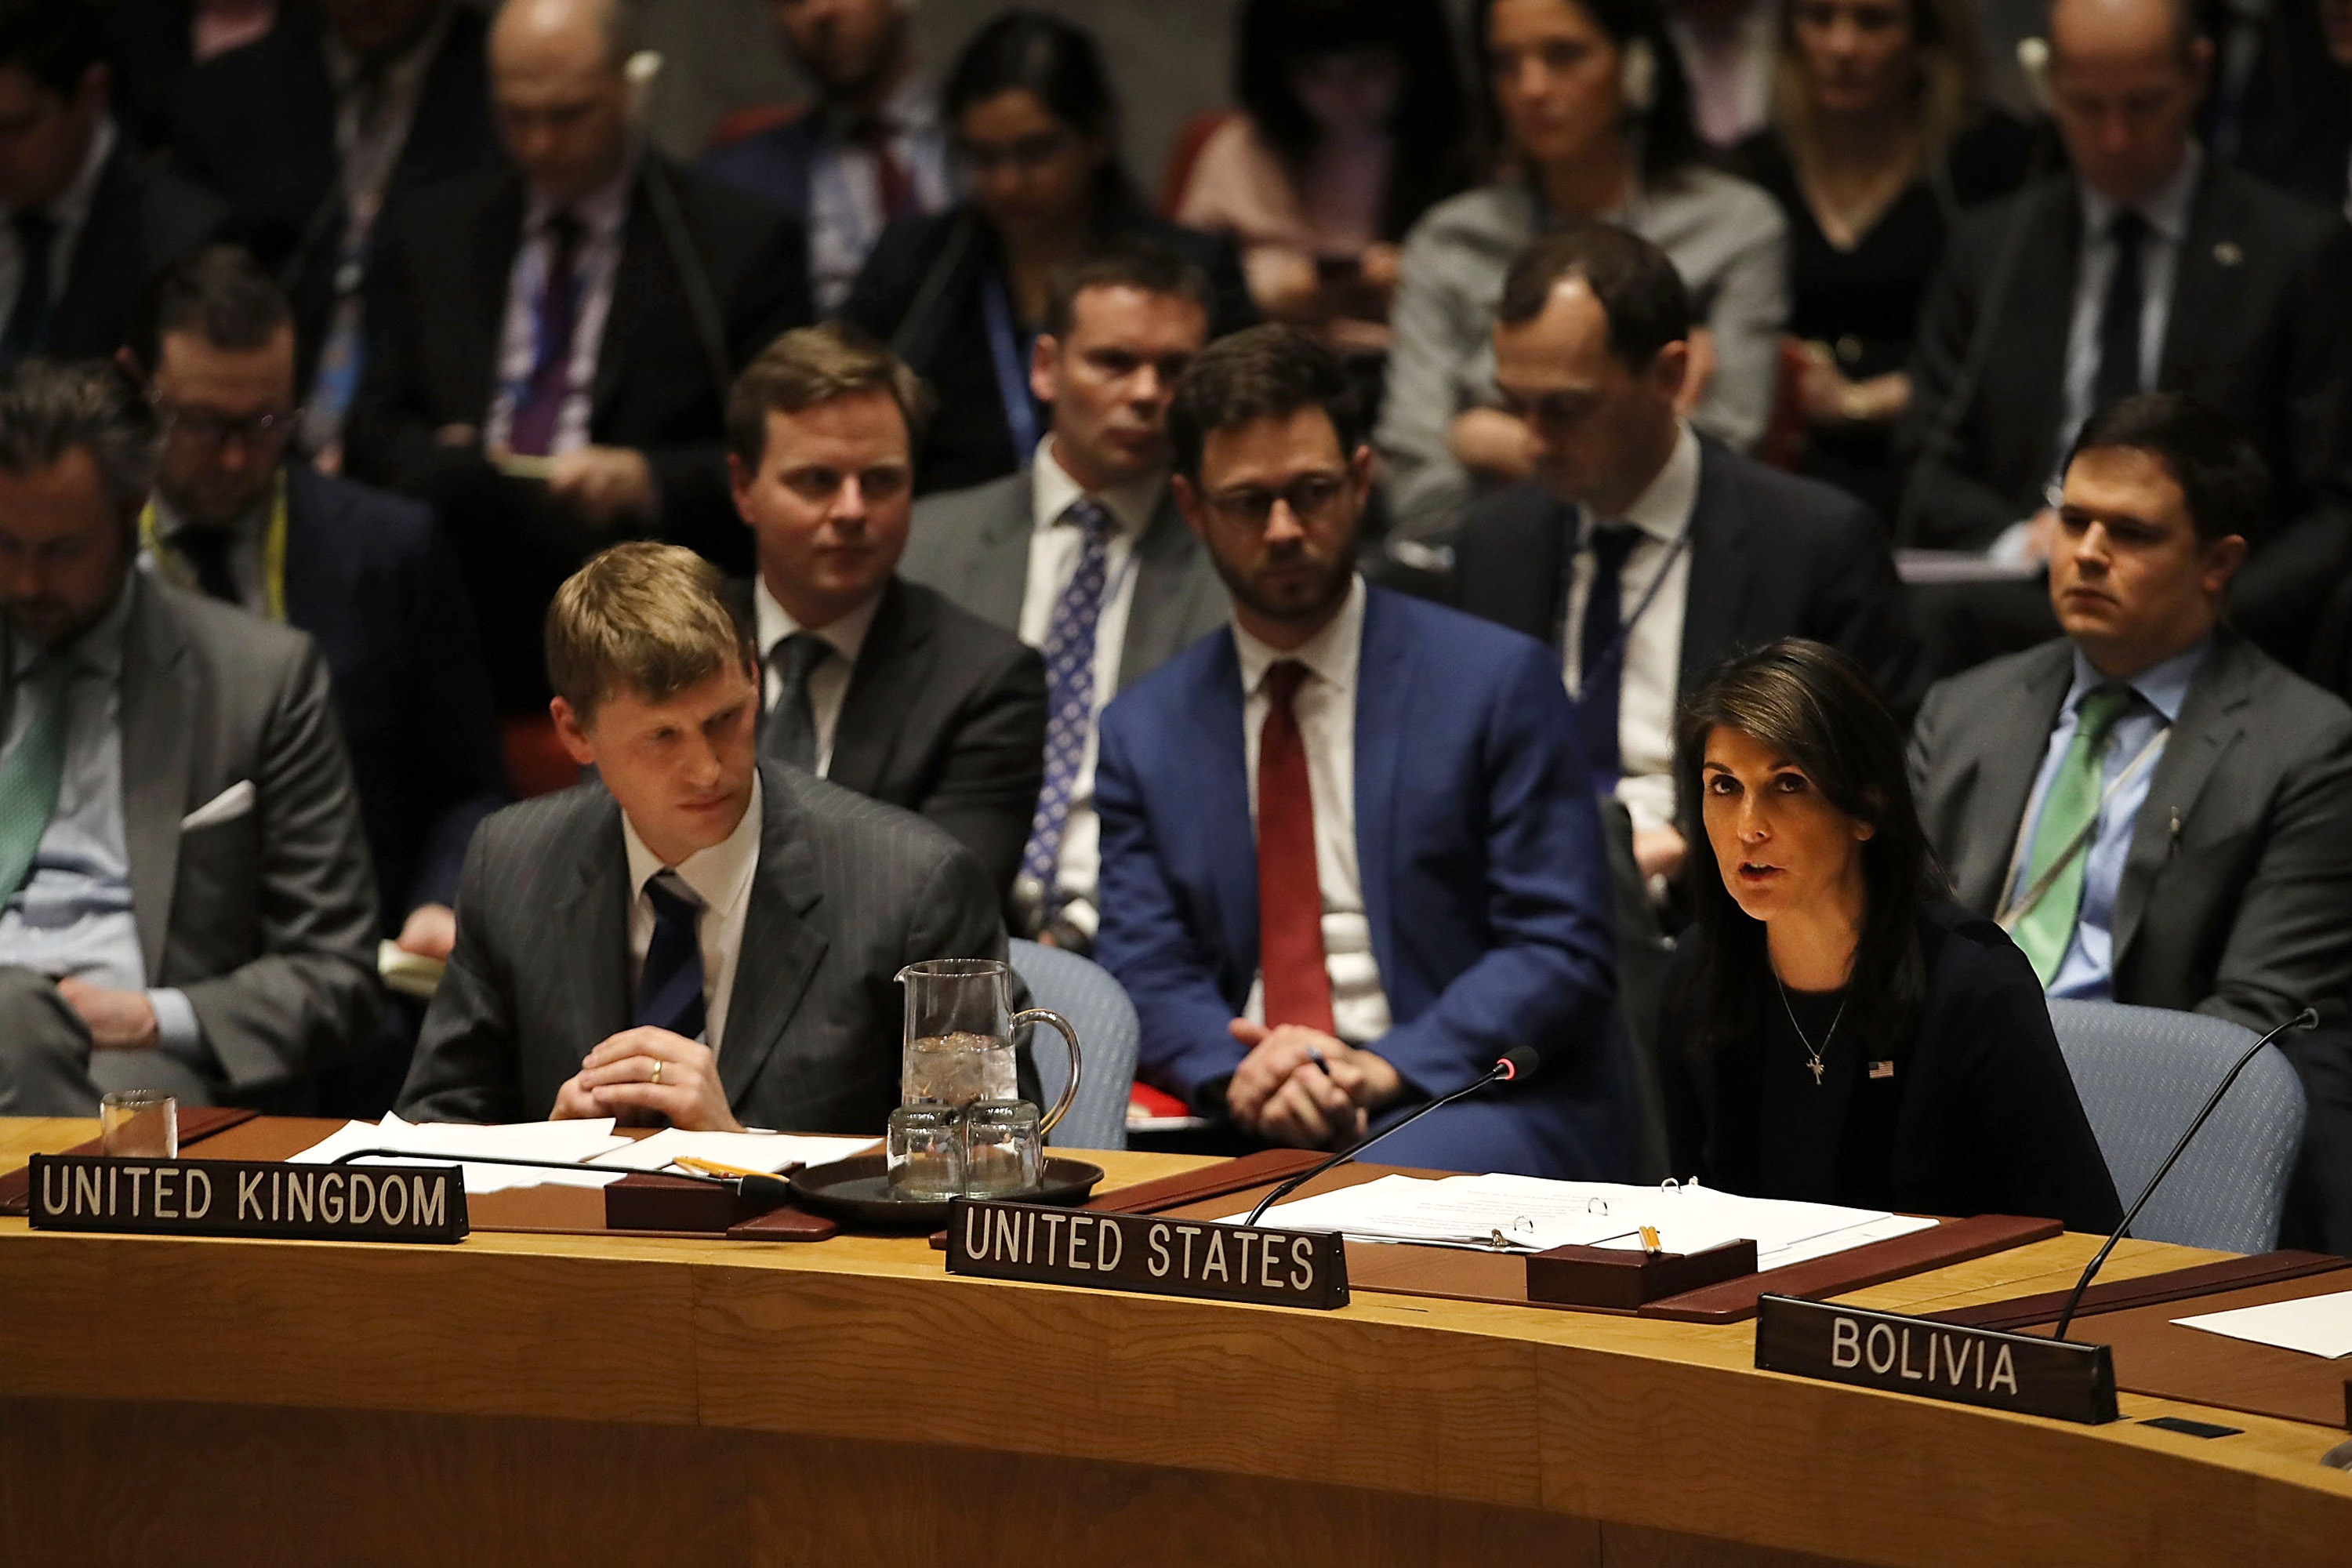 NEW YORK, NY - MARCH 14: United States Ambassador to the United Nations, Nikki Haley, speaks at the security council after the United Kingdom called for an urgent meeting of the UN security council to update council members on the investigation into the recent nerve agent attack in Salisbury, United Kingdom on March 14, 2018 in New York City. UK Prime Minister Theresa May is preparing to set out a range of reprisals against the Russian, who many believe is behind the attack on former spy Sergei Skripal, 66, and his daughter, Yulia Skripal, 33. (Photo by Spencer Platt/Getty Images)